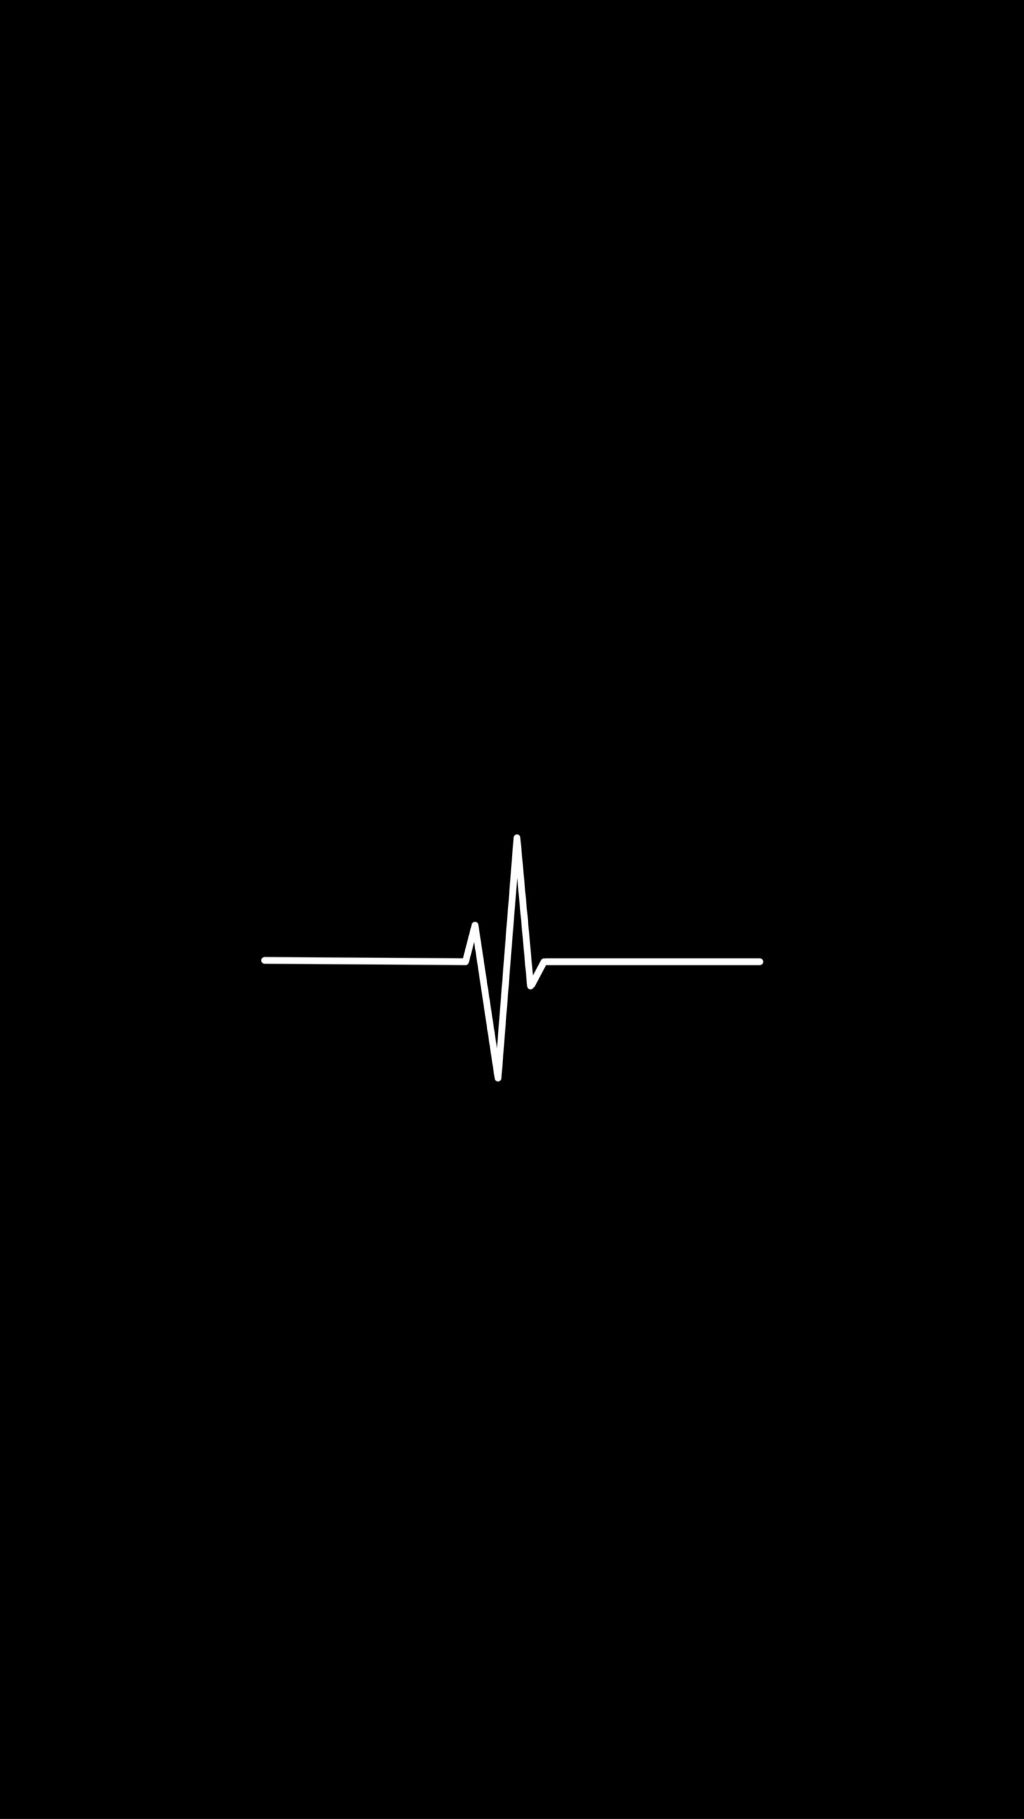 Black Wallpaper With Heartbeat